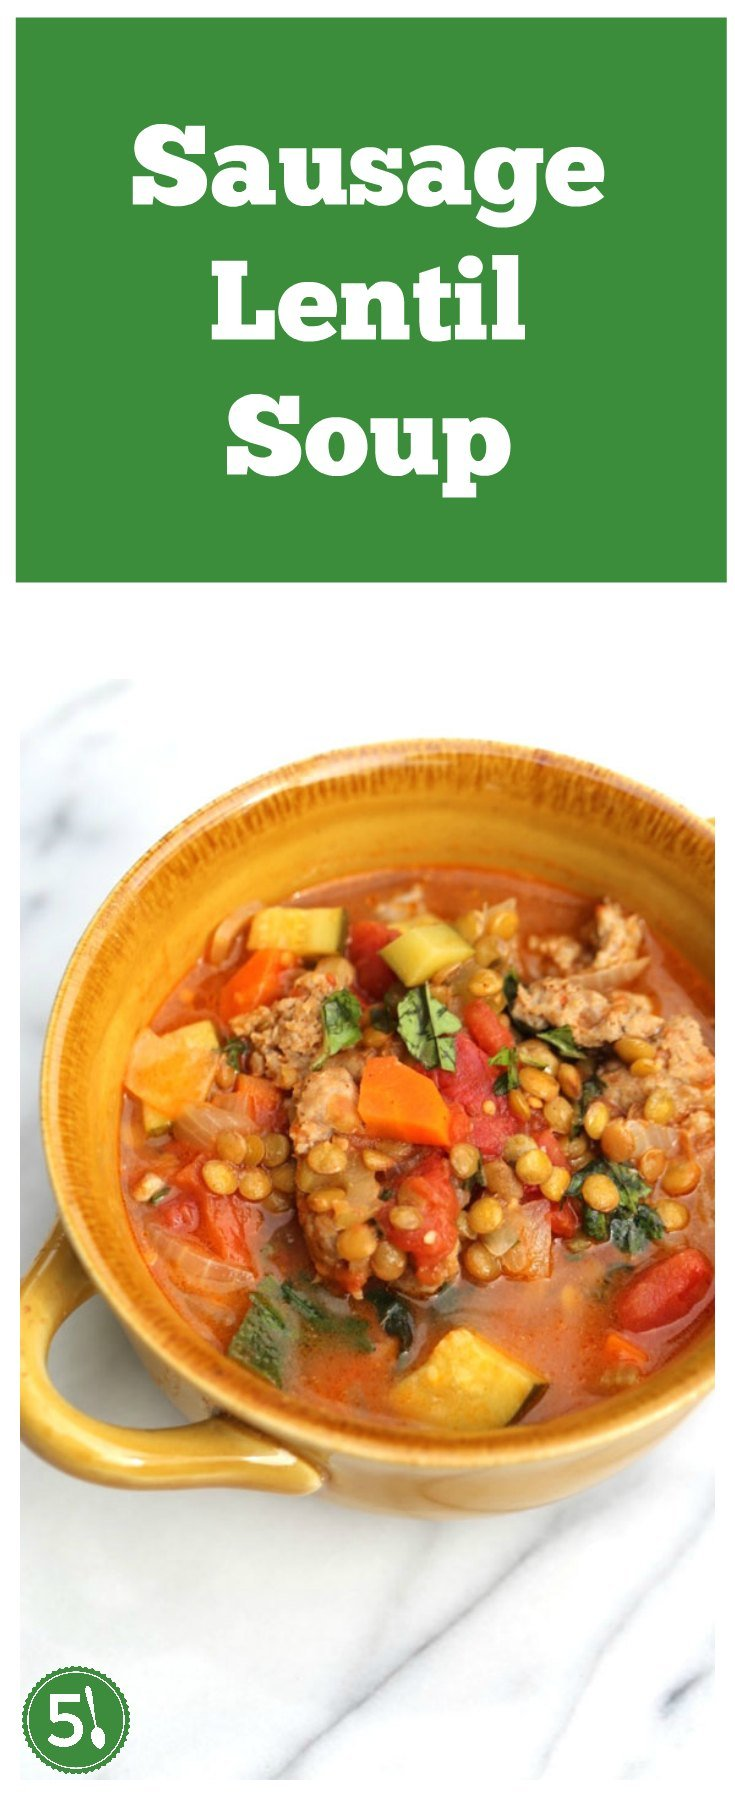 Healthy sausage lentil soup recipe loaded with veggies and italian sausage is such a delicious comfort food for cool Fall weather.  This recipe is similar to the soup at Carrabba's.  So yummy.